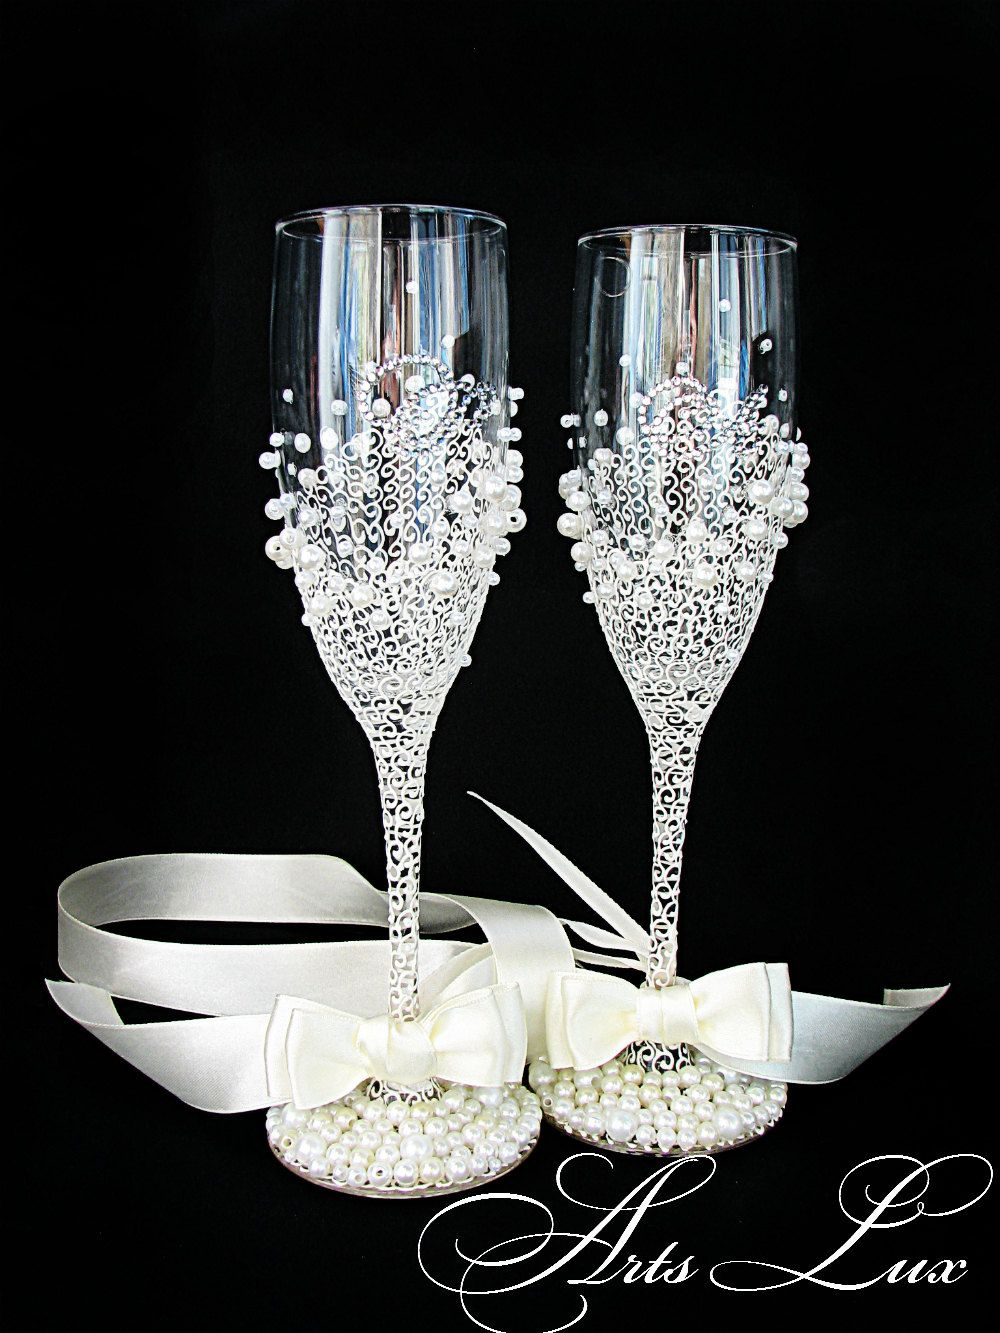 Personalized wedding champagne glasses in ivorywhitehand painted